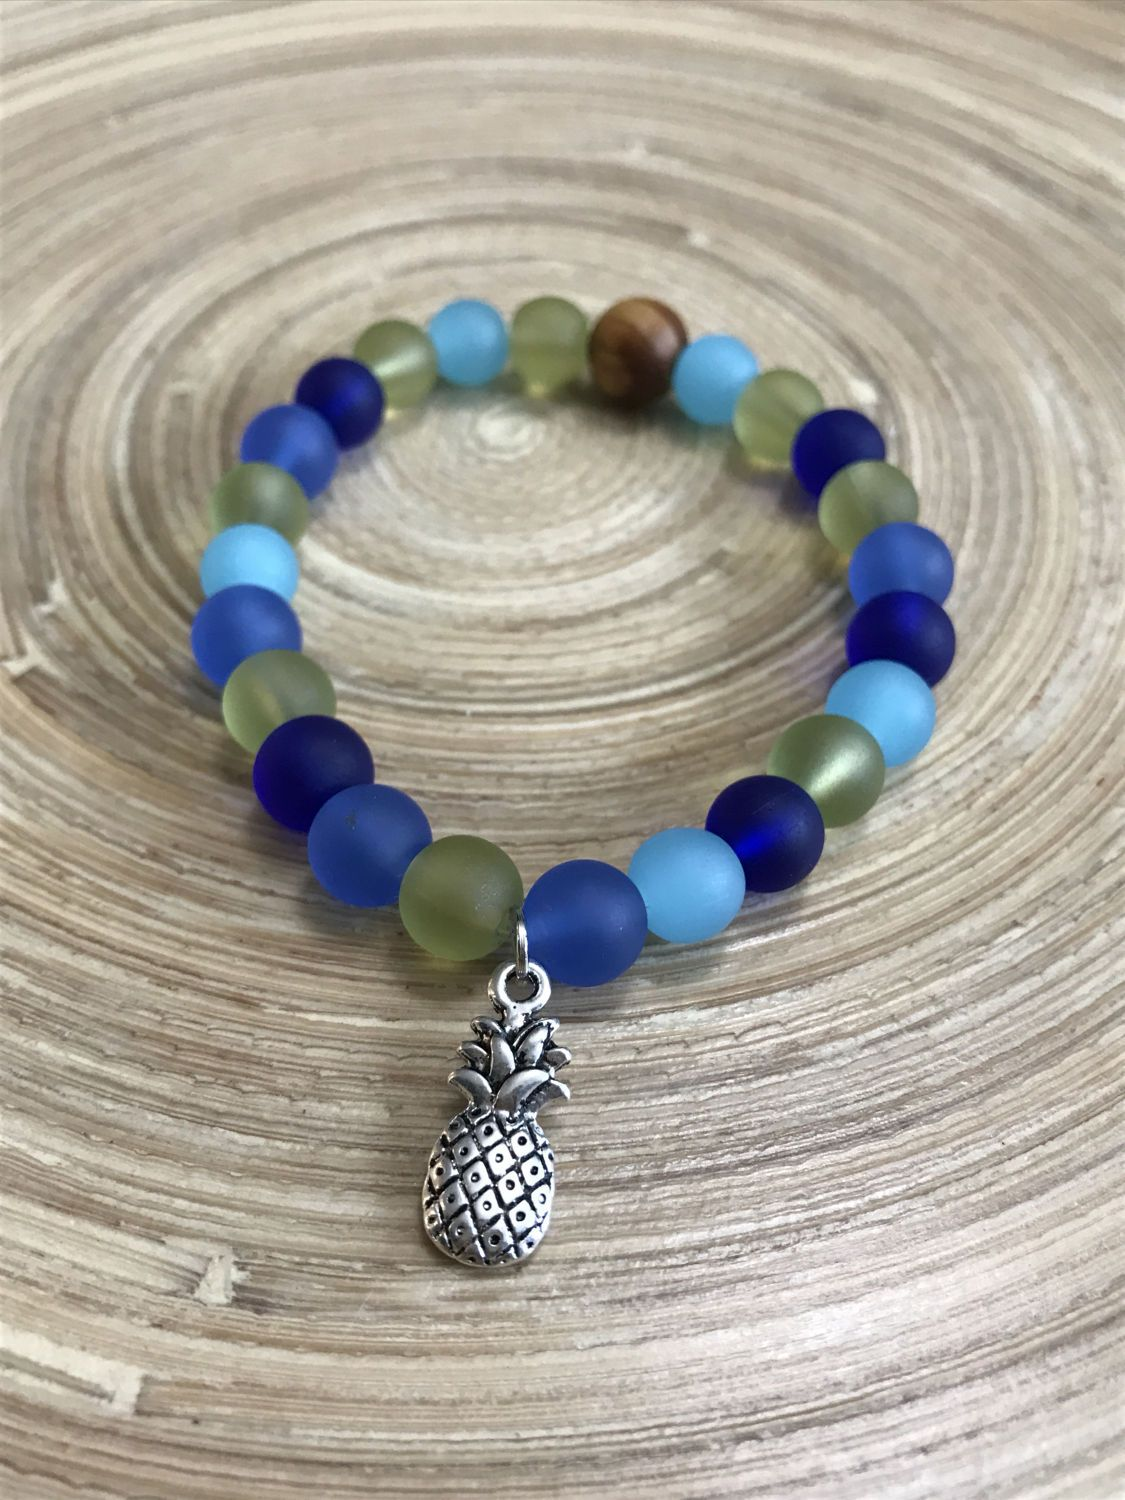 FOLLY Bracelet - sea glass bracelet.  Available charms include #pineapple #anchor #turtle  #handmade #jewelry #bracelet #beaded #seaglass #beachy #silver #gold